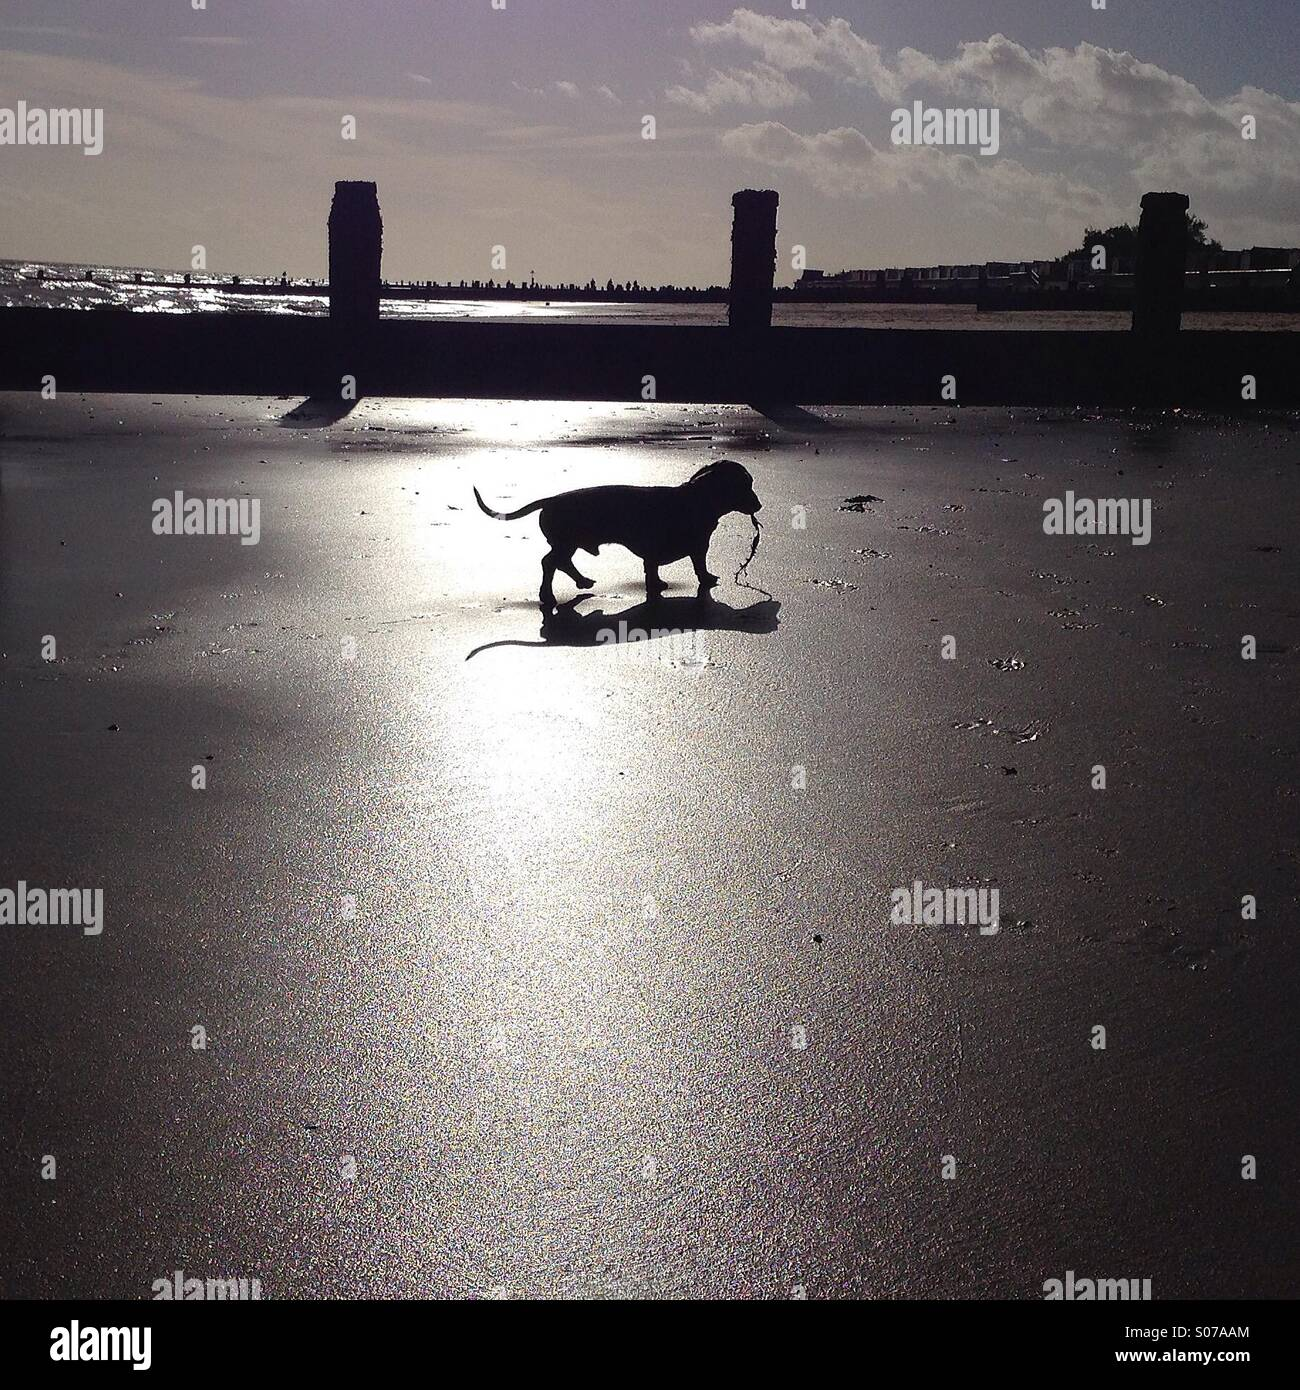 Dachshund silhouette - Stock Image